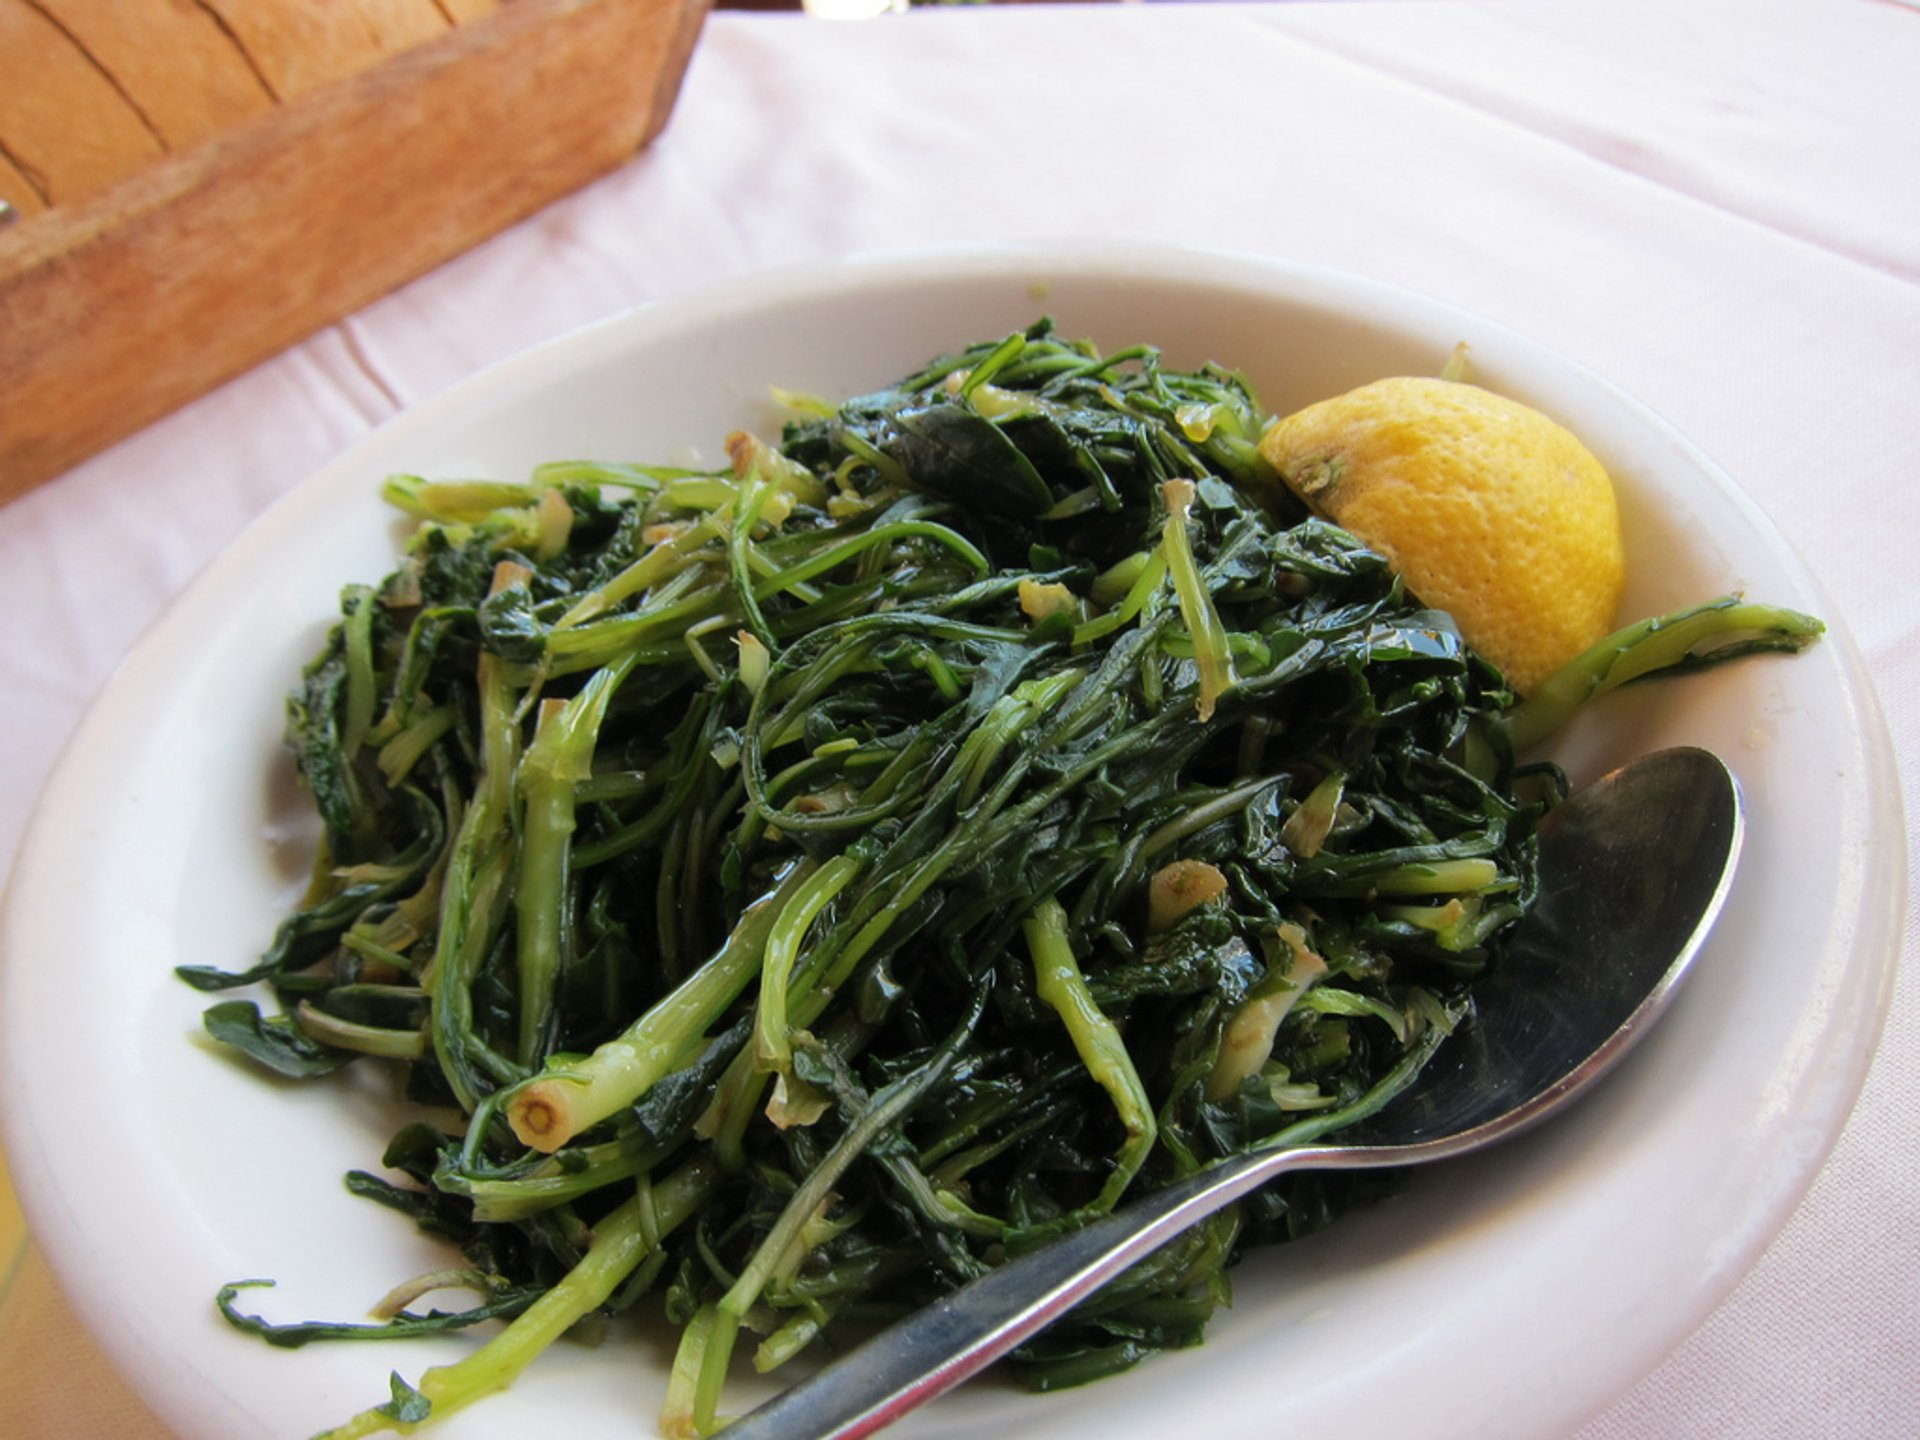 Wild Greens (Horta) in Crete 2020 - Best Time